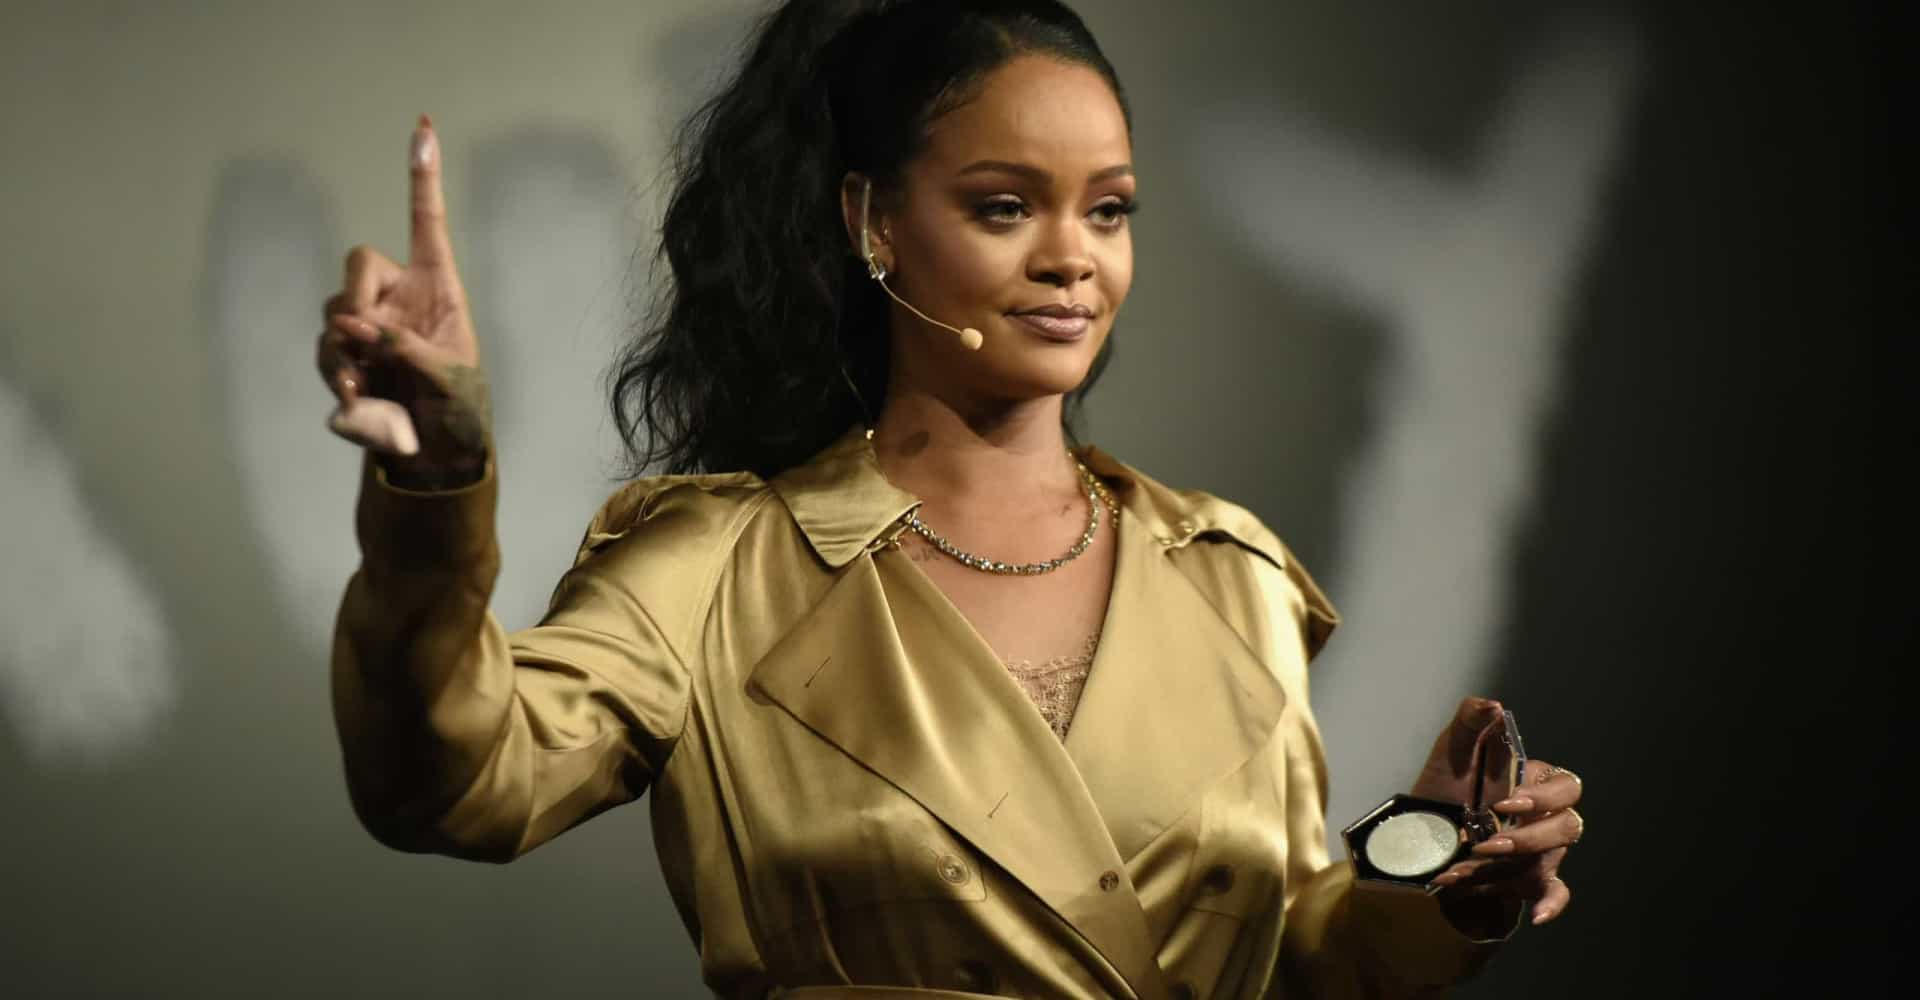 Rihanna and other stars' emotional messages for stricter gun control